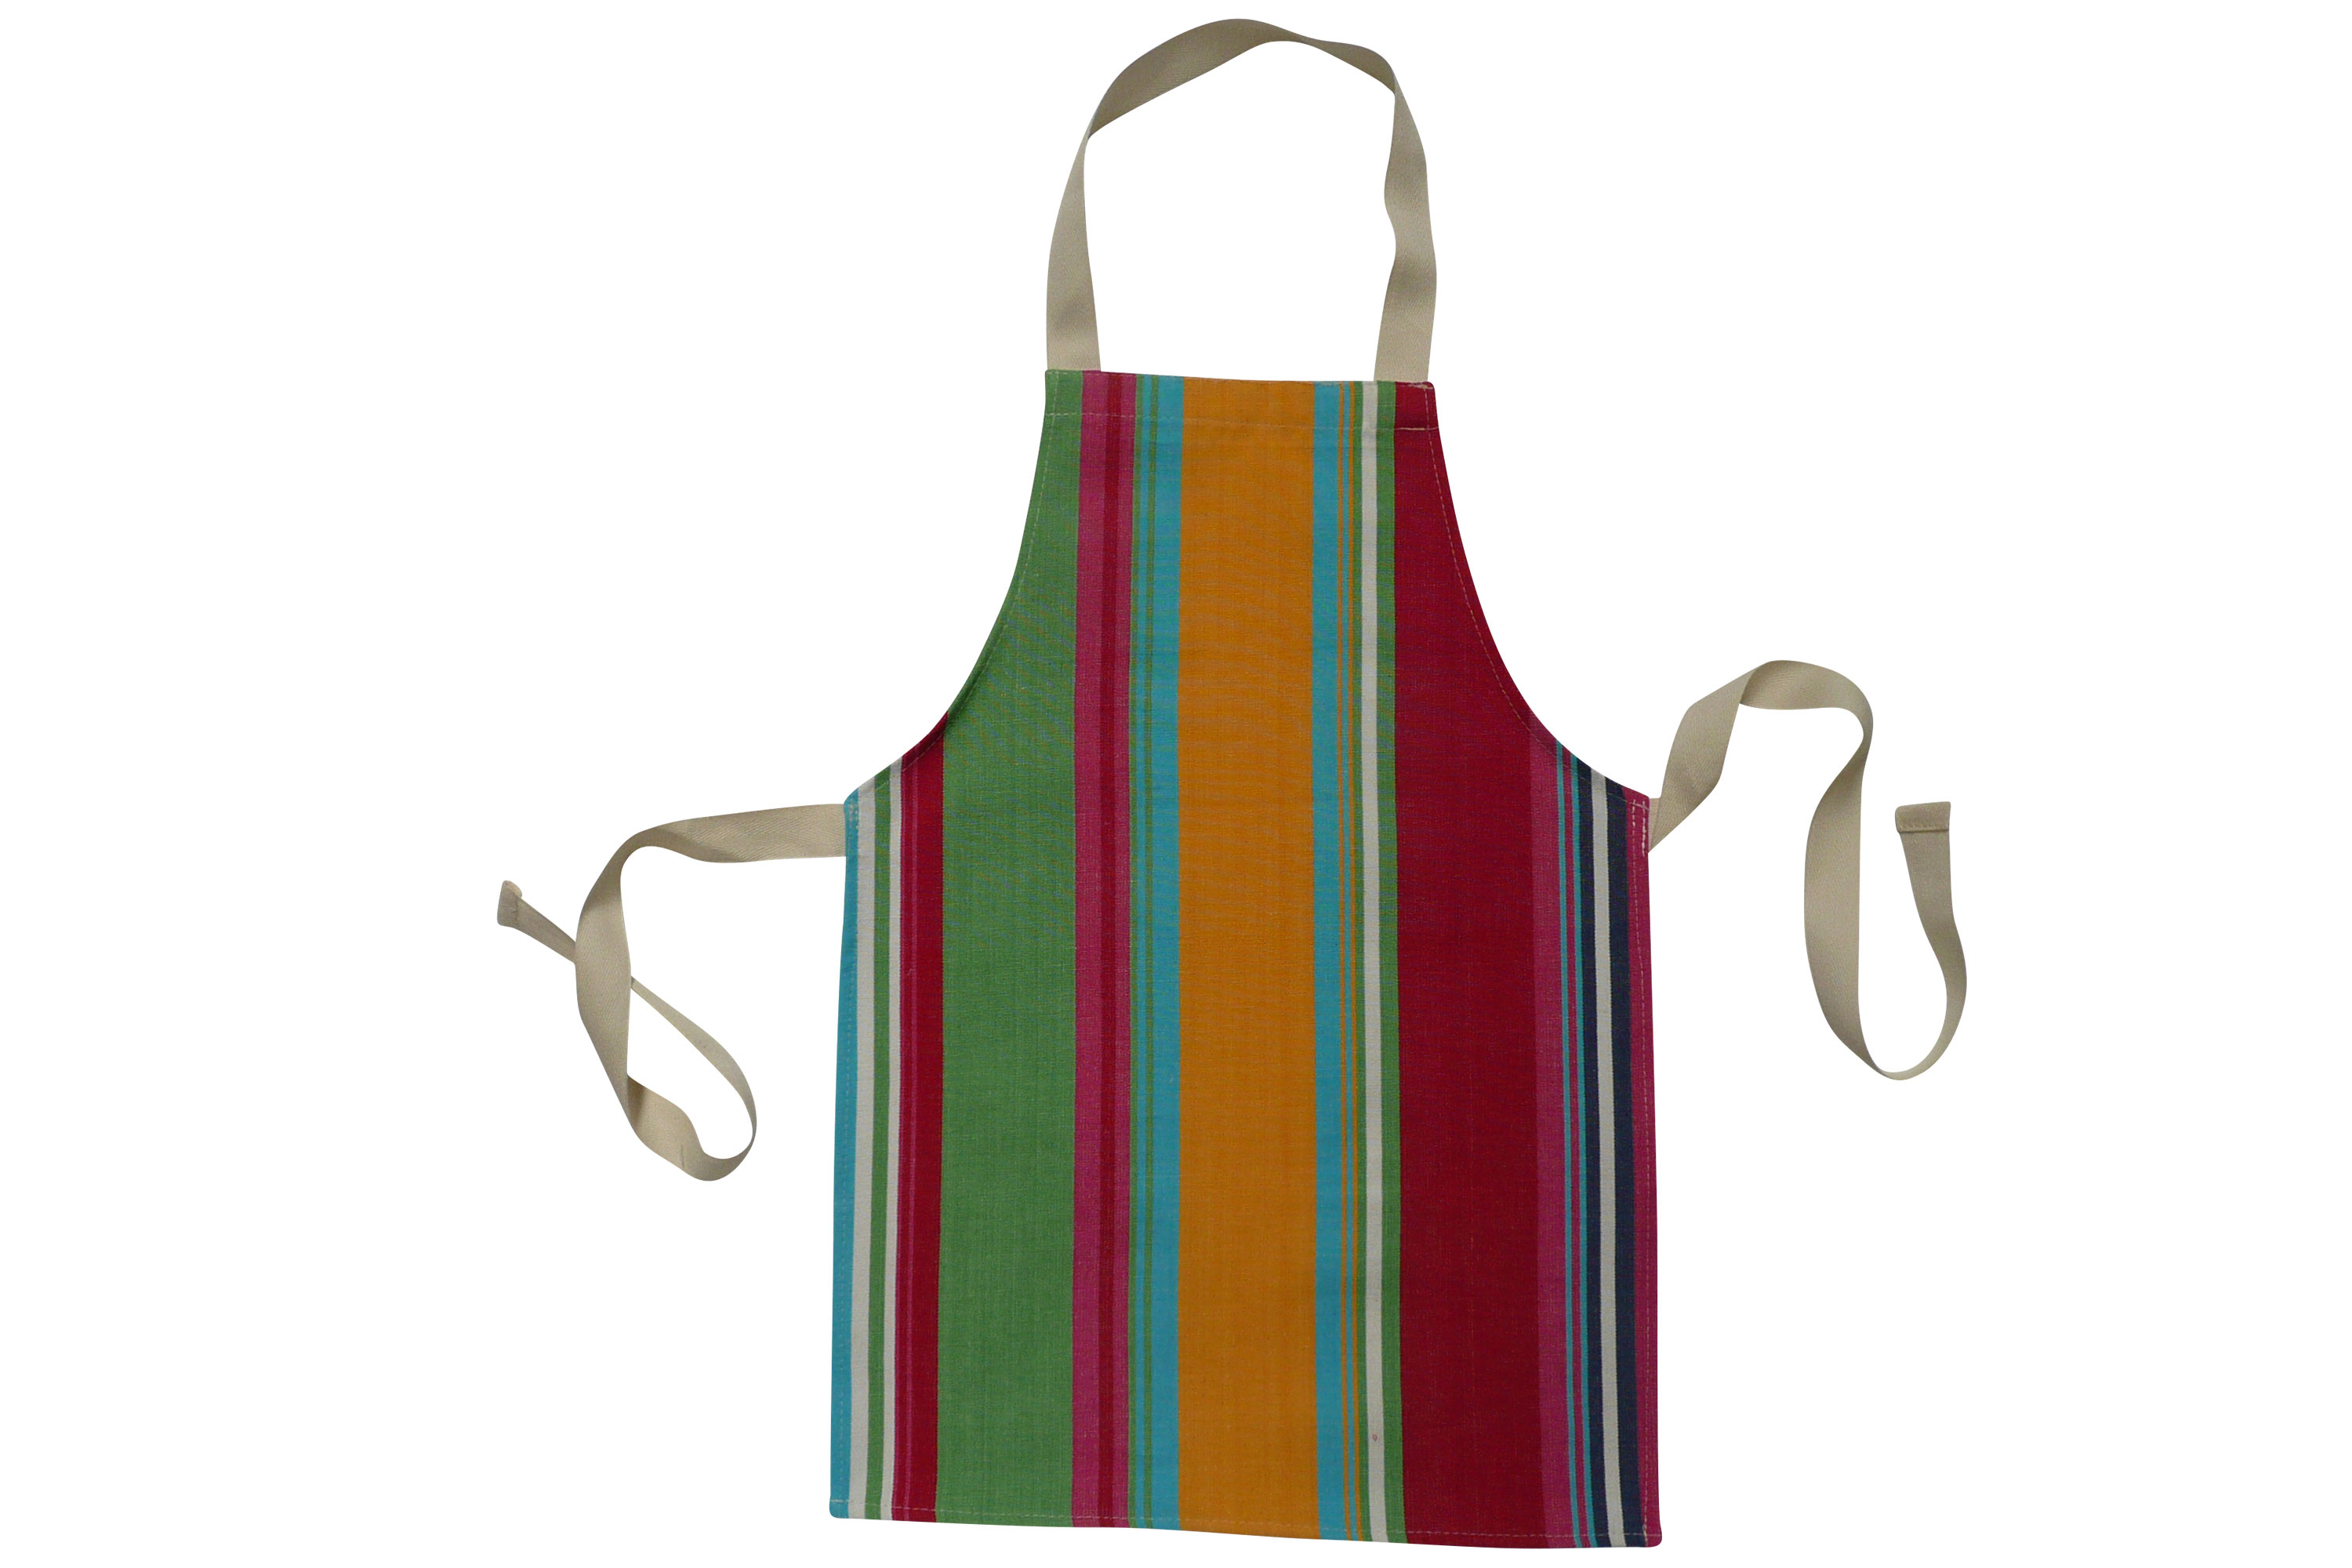 Pink Toddlers Aprons - Striped Aprons For Small Children Pink  Green  Yellow  Stripes